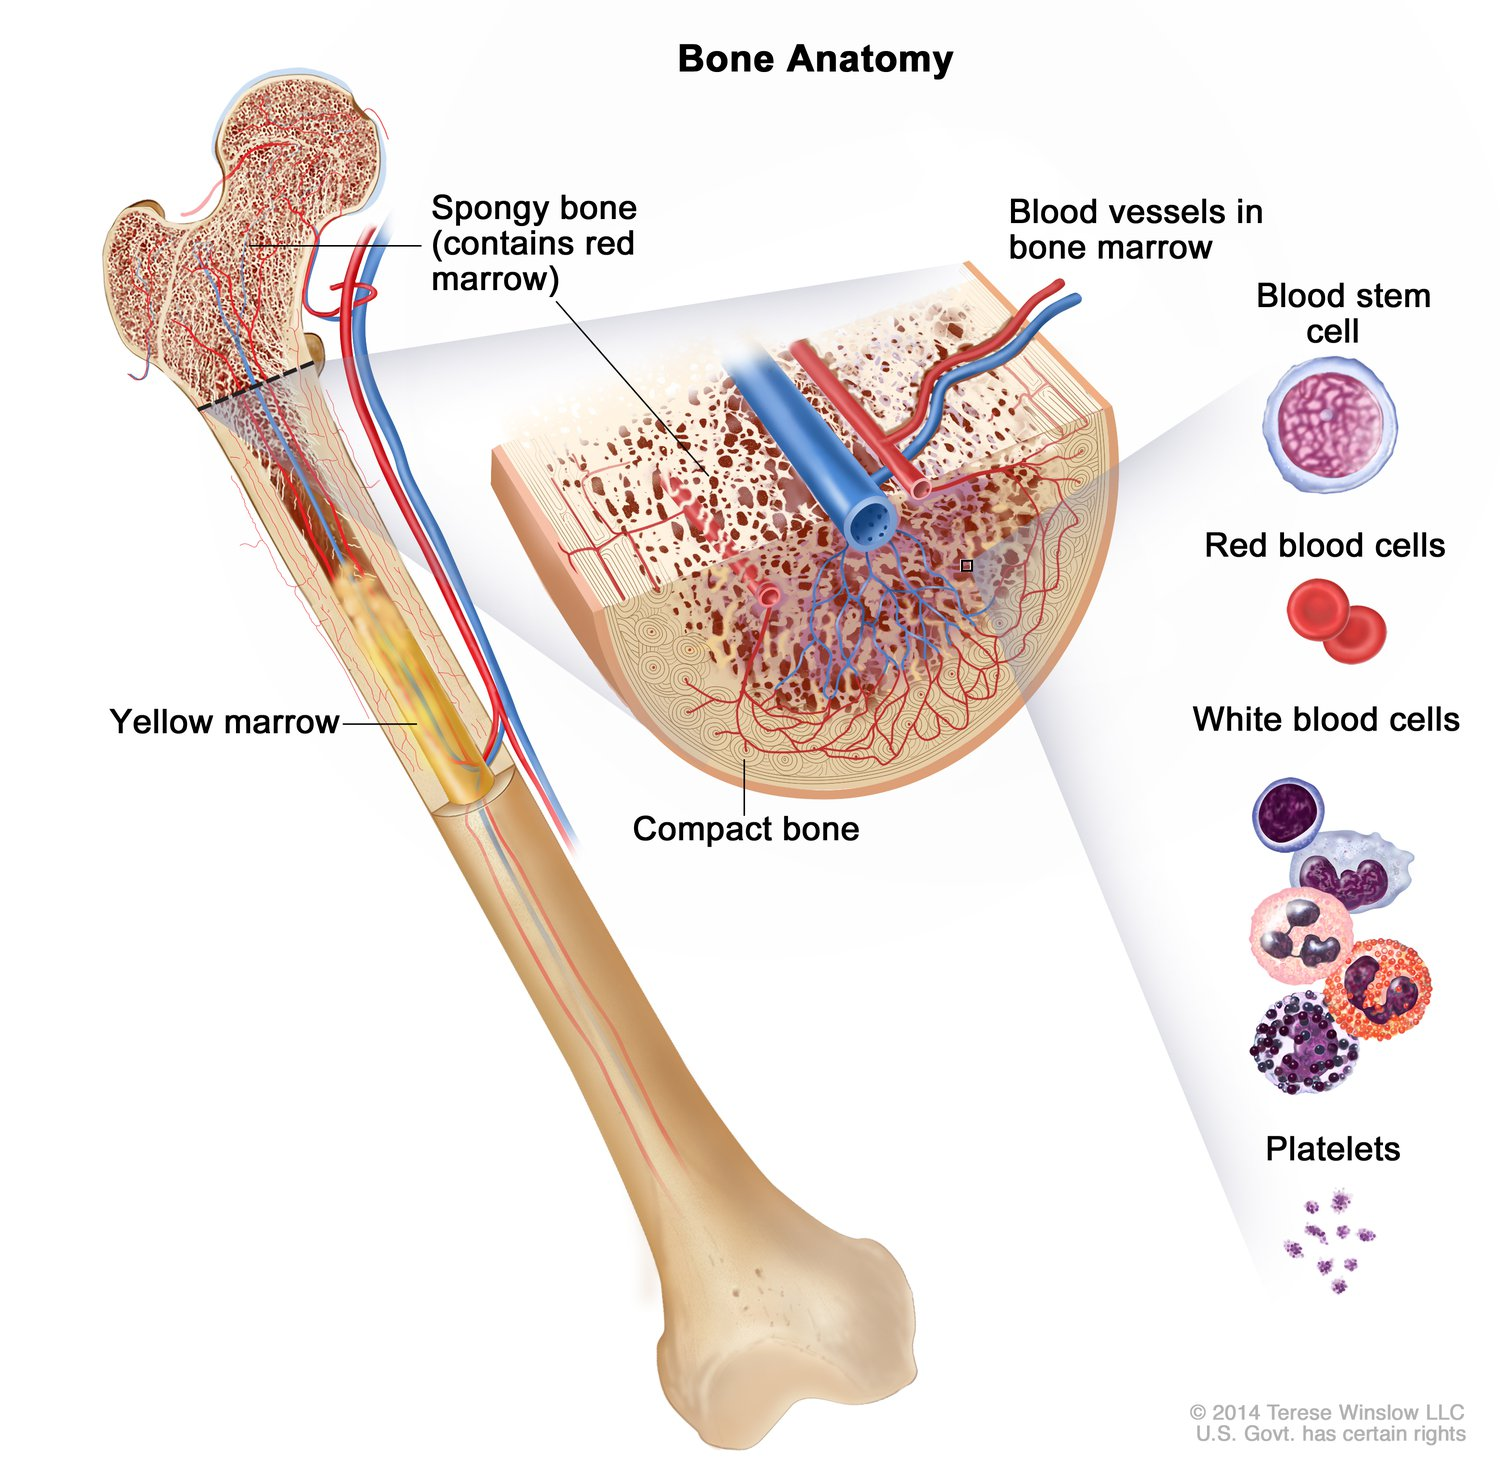 Cross section of a bone showing spongy bone, compact bone, and blood vessels in bone marrow, with an inset showing individual blood components: blood stem cell, red blood cells, white blood cells, and platelets.